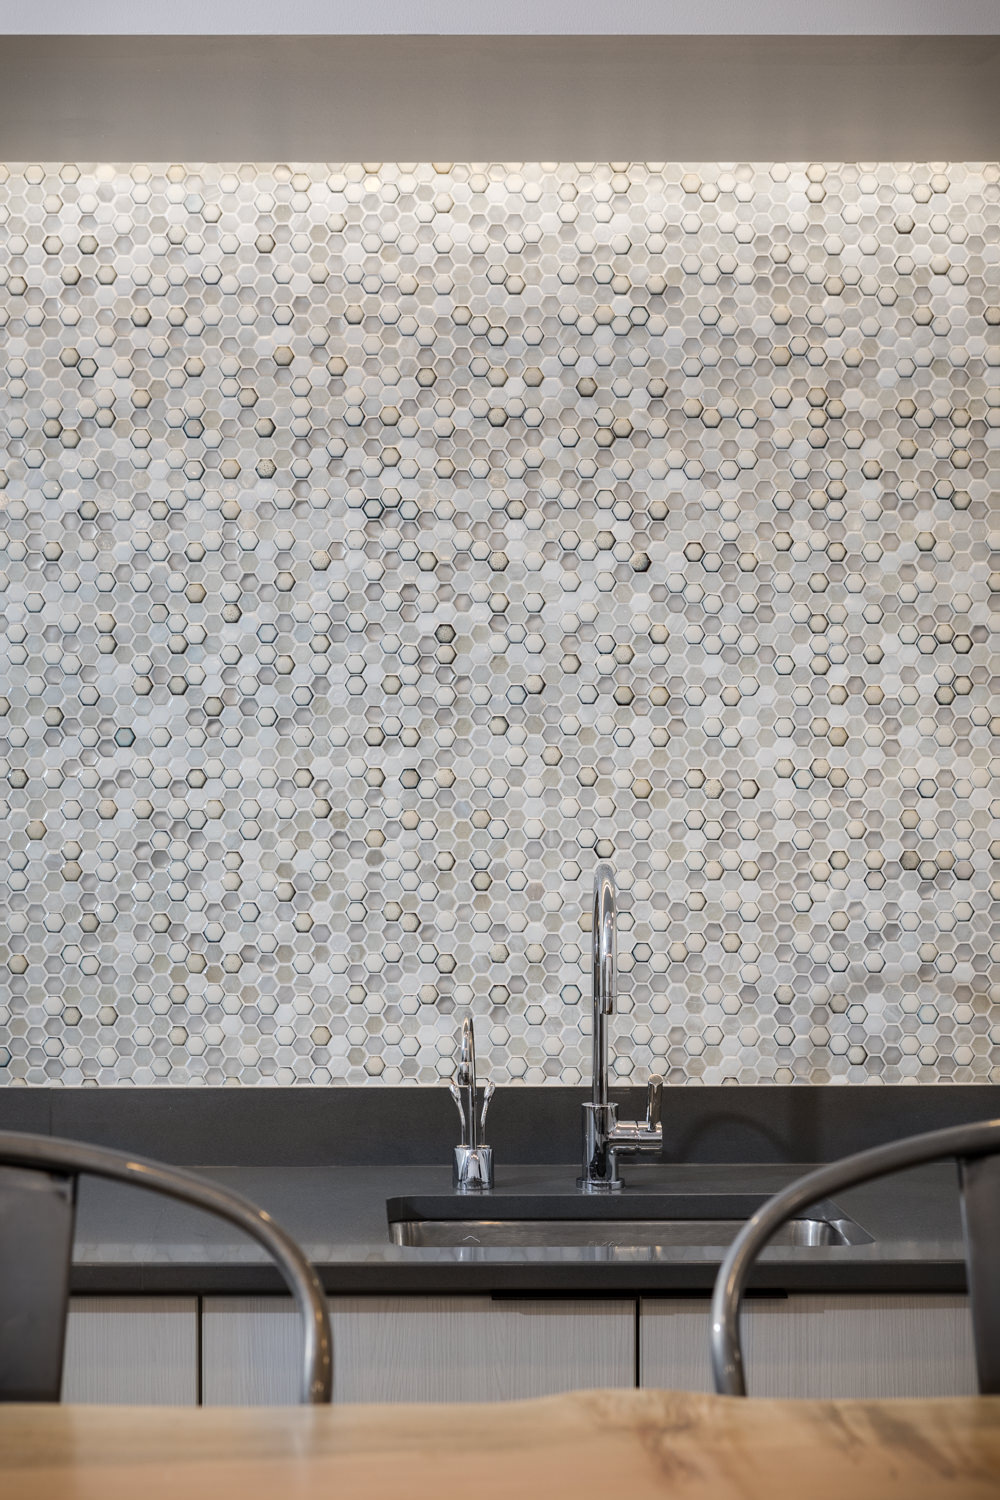 Detail photo of the modern hex wall tile, undermount stainless steel sink, industrial stools and raw edge wood table in the employee lunch room at KPMG in Vermont taken by professional photographer Stina Booth